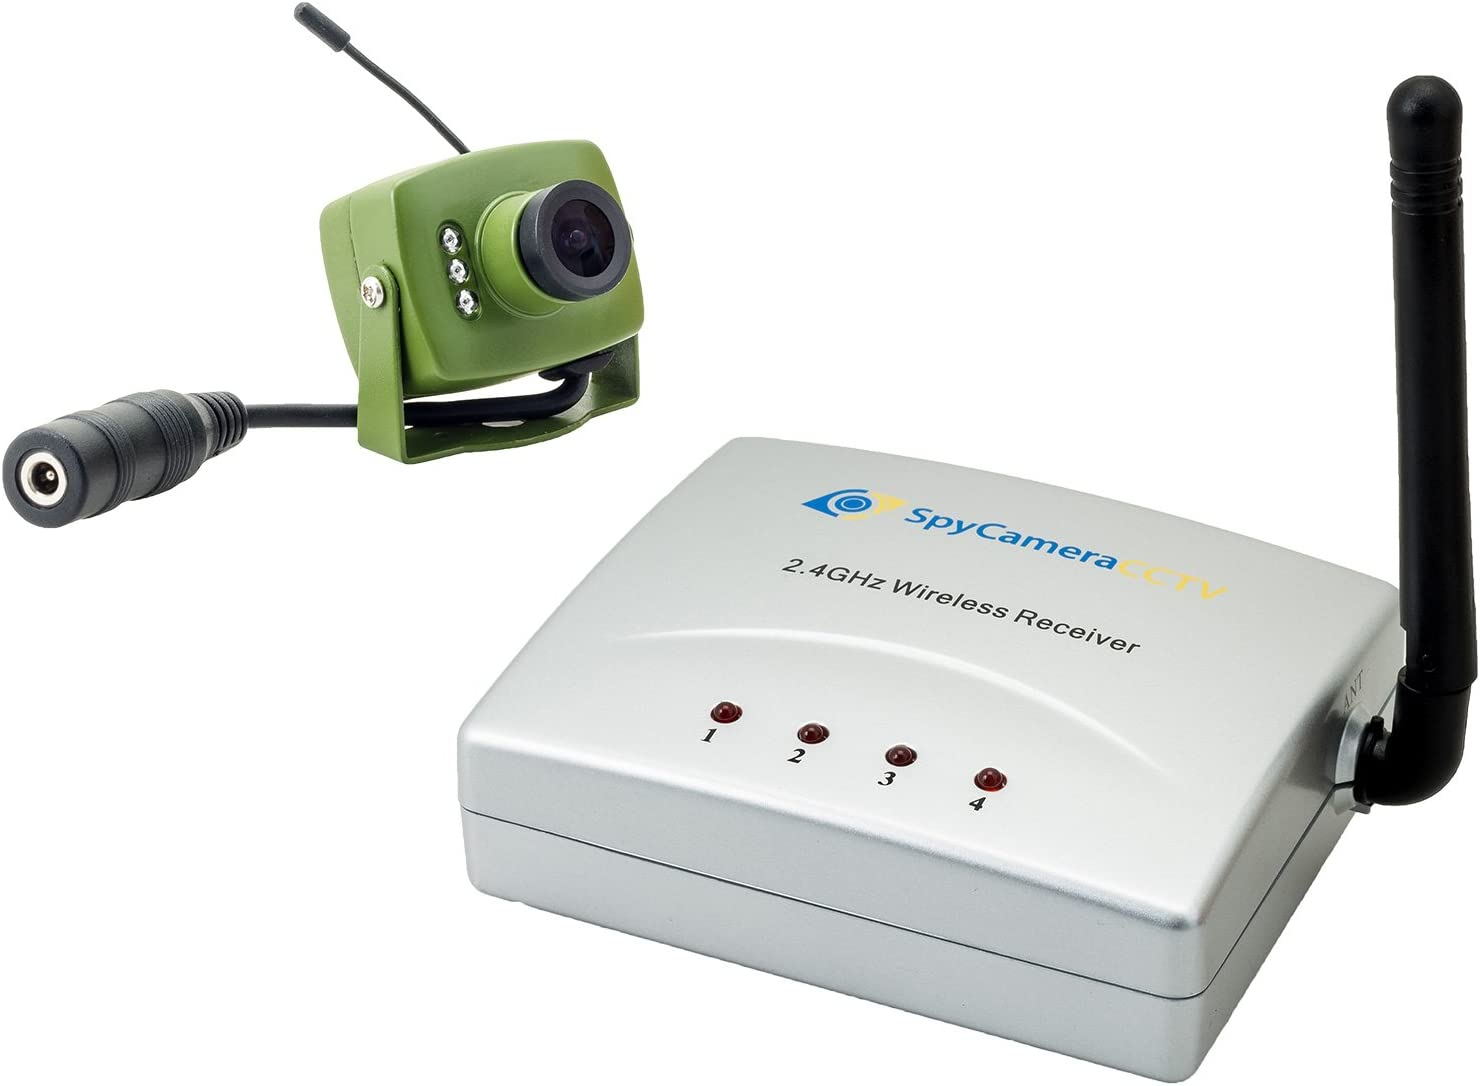 Includes 10M Power Extension Cable Green Feathers Wildlife Wireless Bird Box SD 700TVL Camera with Night Vision Wireless Receiver and Wide Angle Lens